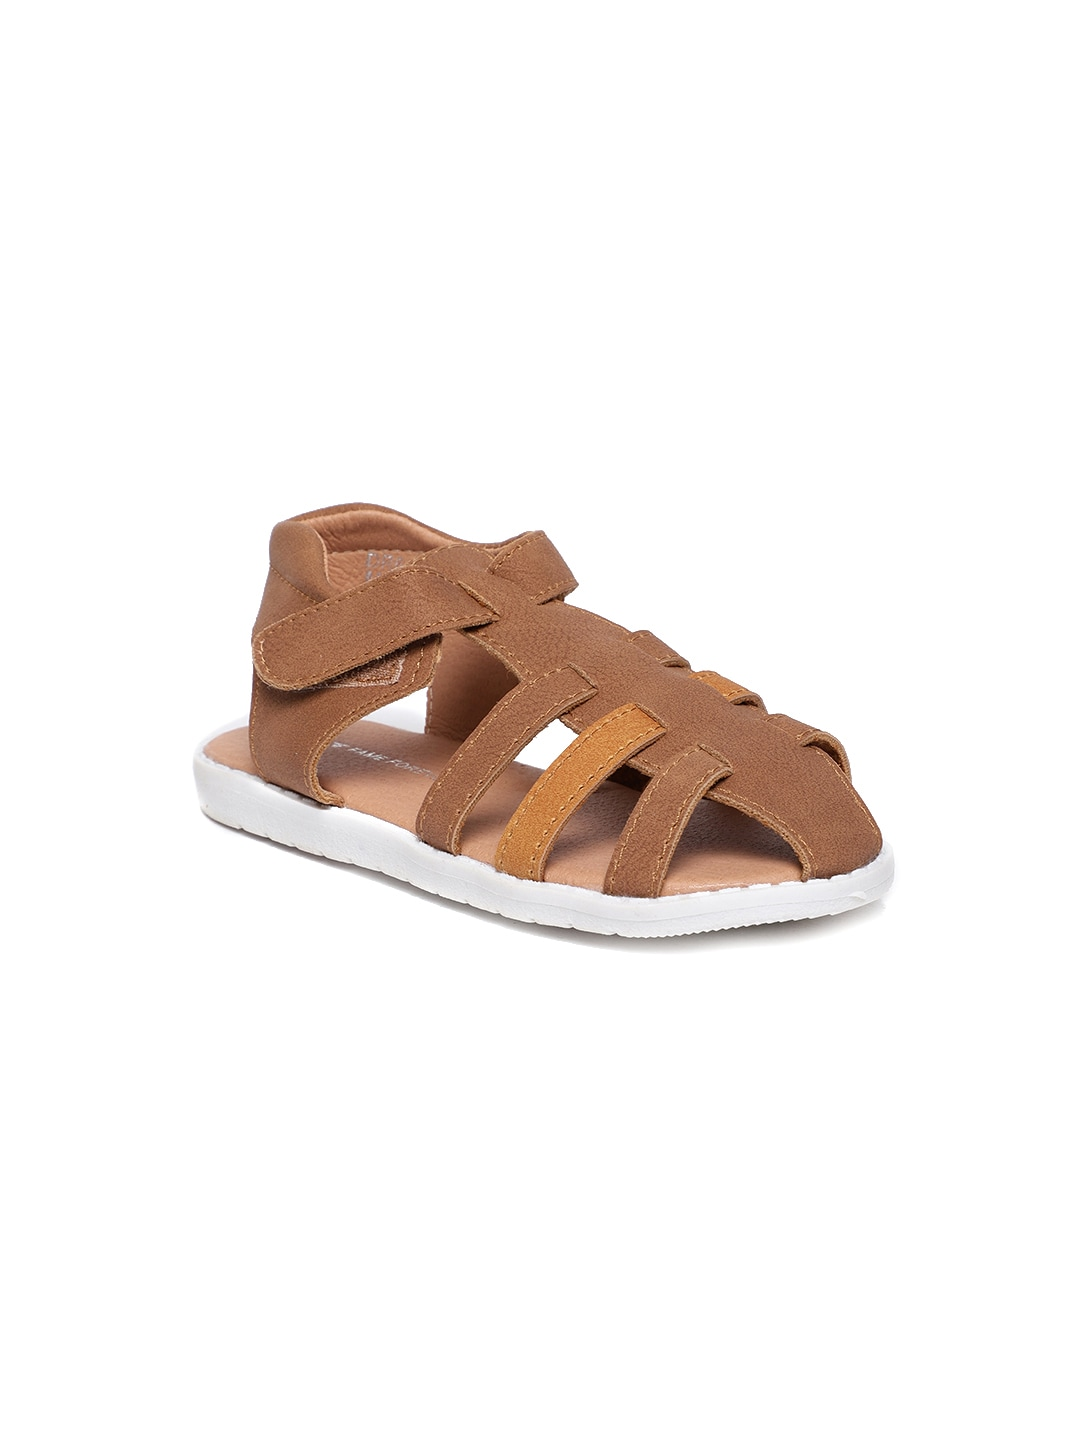 f097ee2148a Forca By Lifestyle By Lifestyle Flip Flops Sandal - Buy Forca By Lifestyle  By Lifestyle Flip Flops Sandal online in India